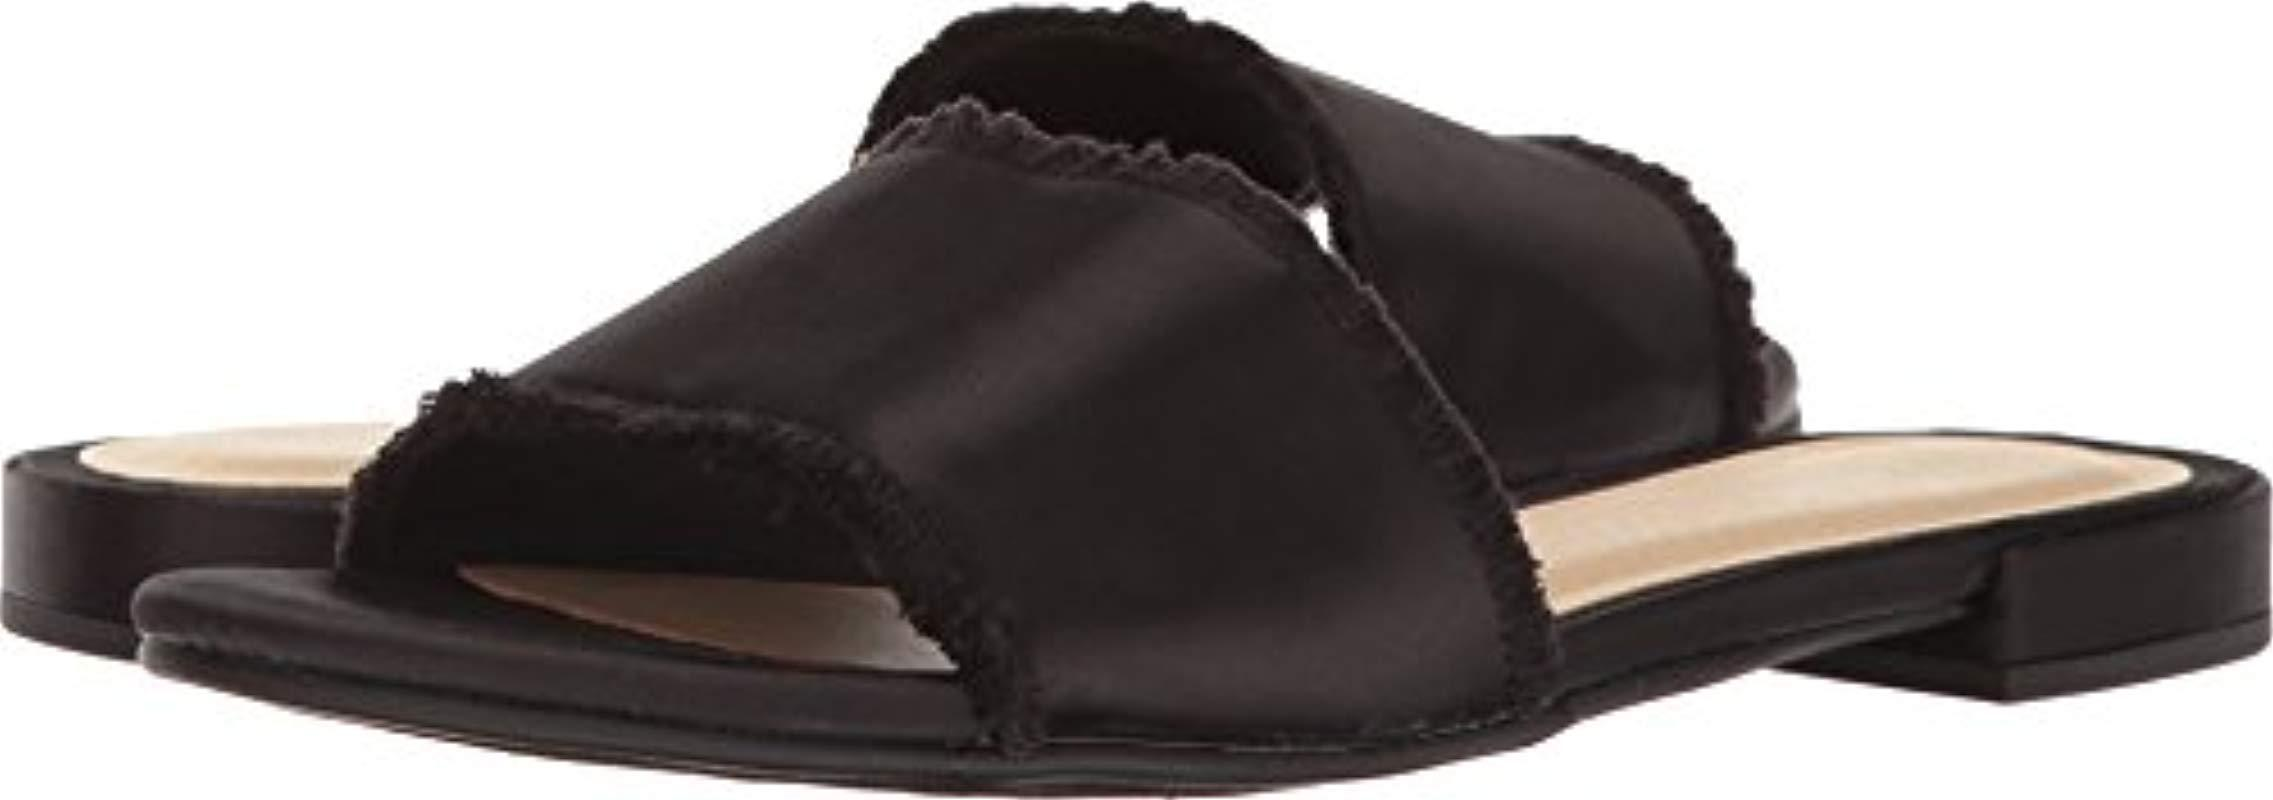 4906dc648805 Lyst - Chinese Laundry Pattie Slide Sandal in Black - Save 61%